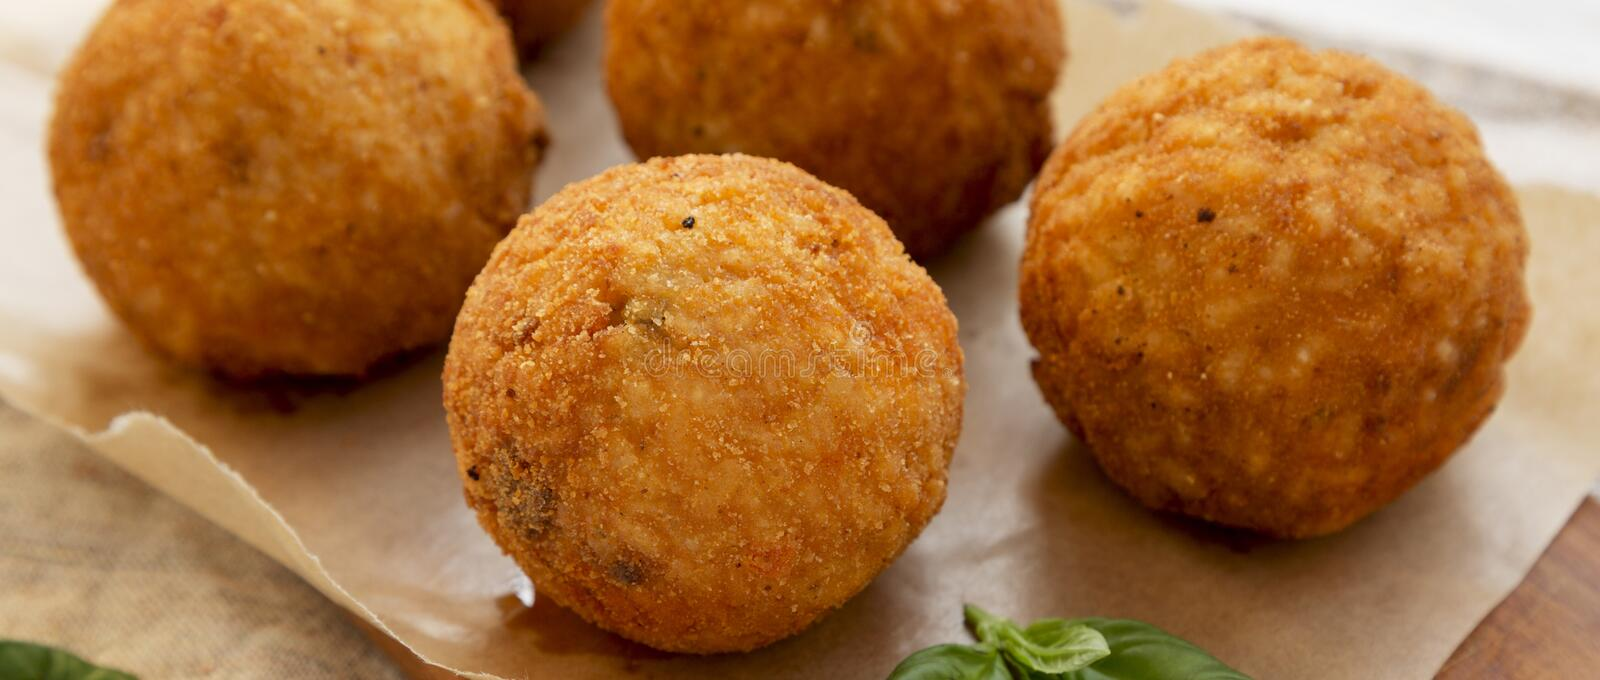 Homemade fried Arancini with basil on a rustic wooden board, low angle view. Italian rice balls. Closeup.  royalty free stock photography